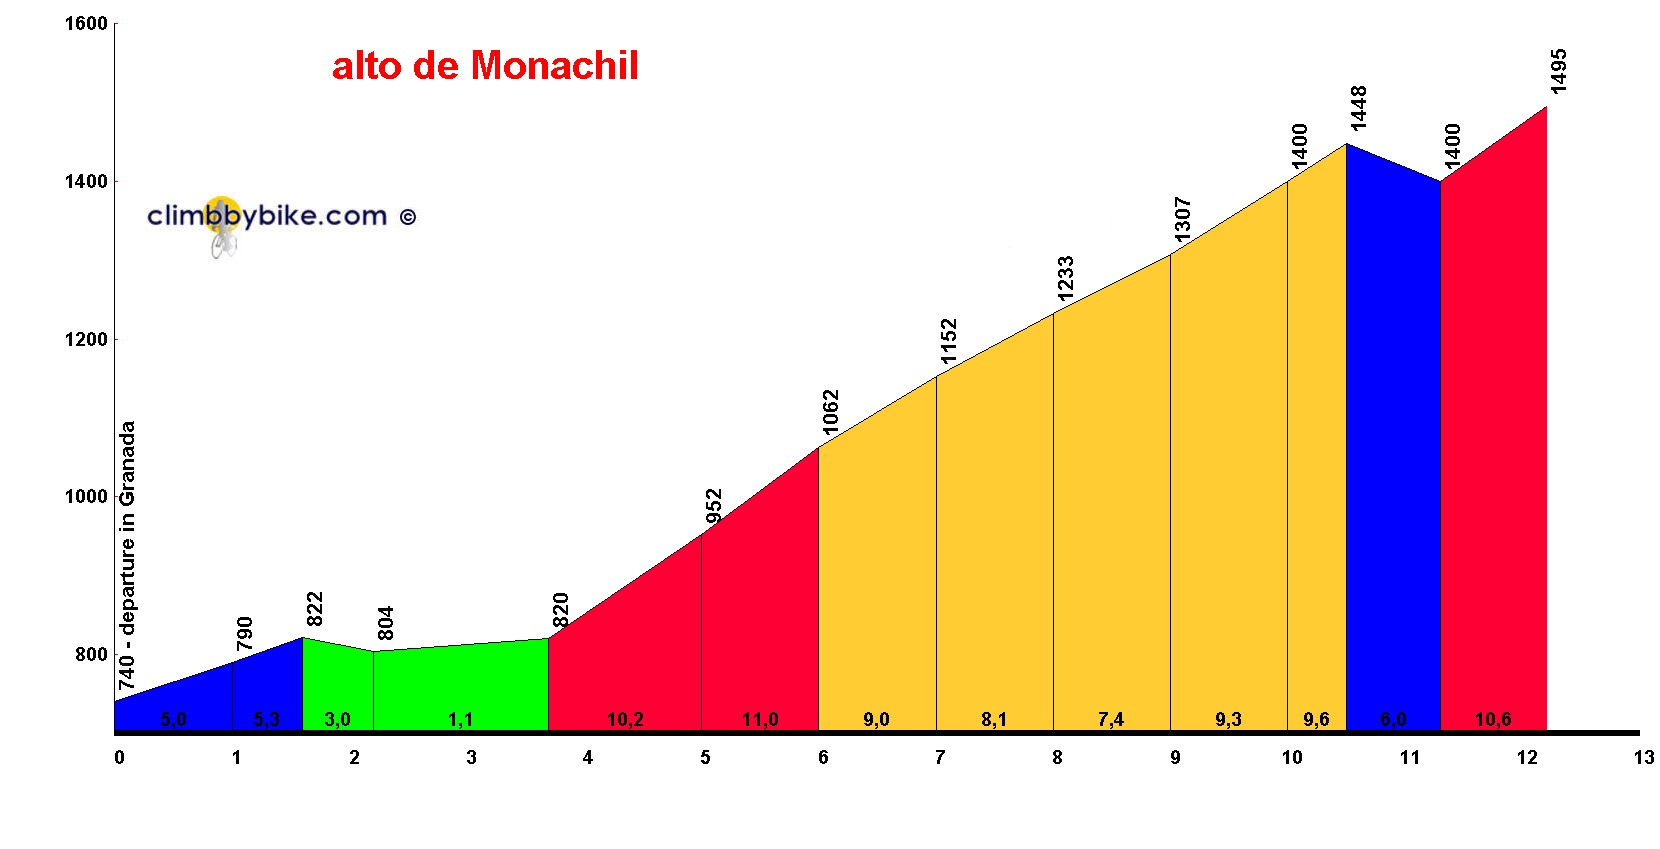 Elevation profile for alto de Monachil